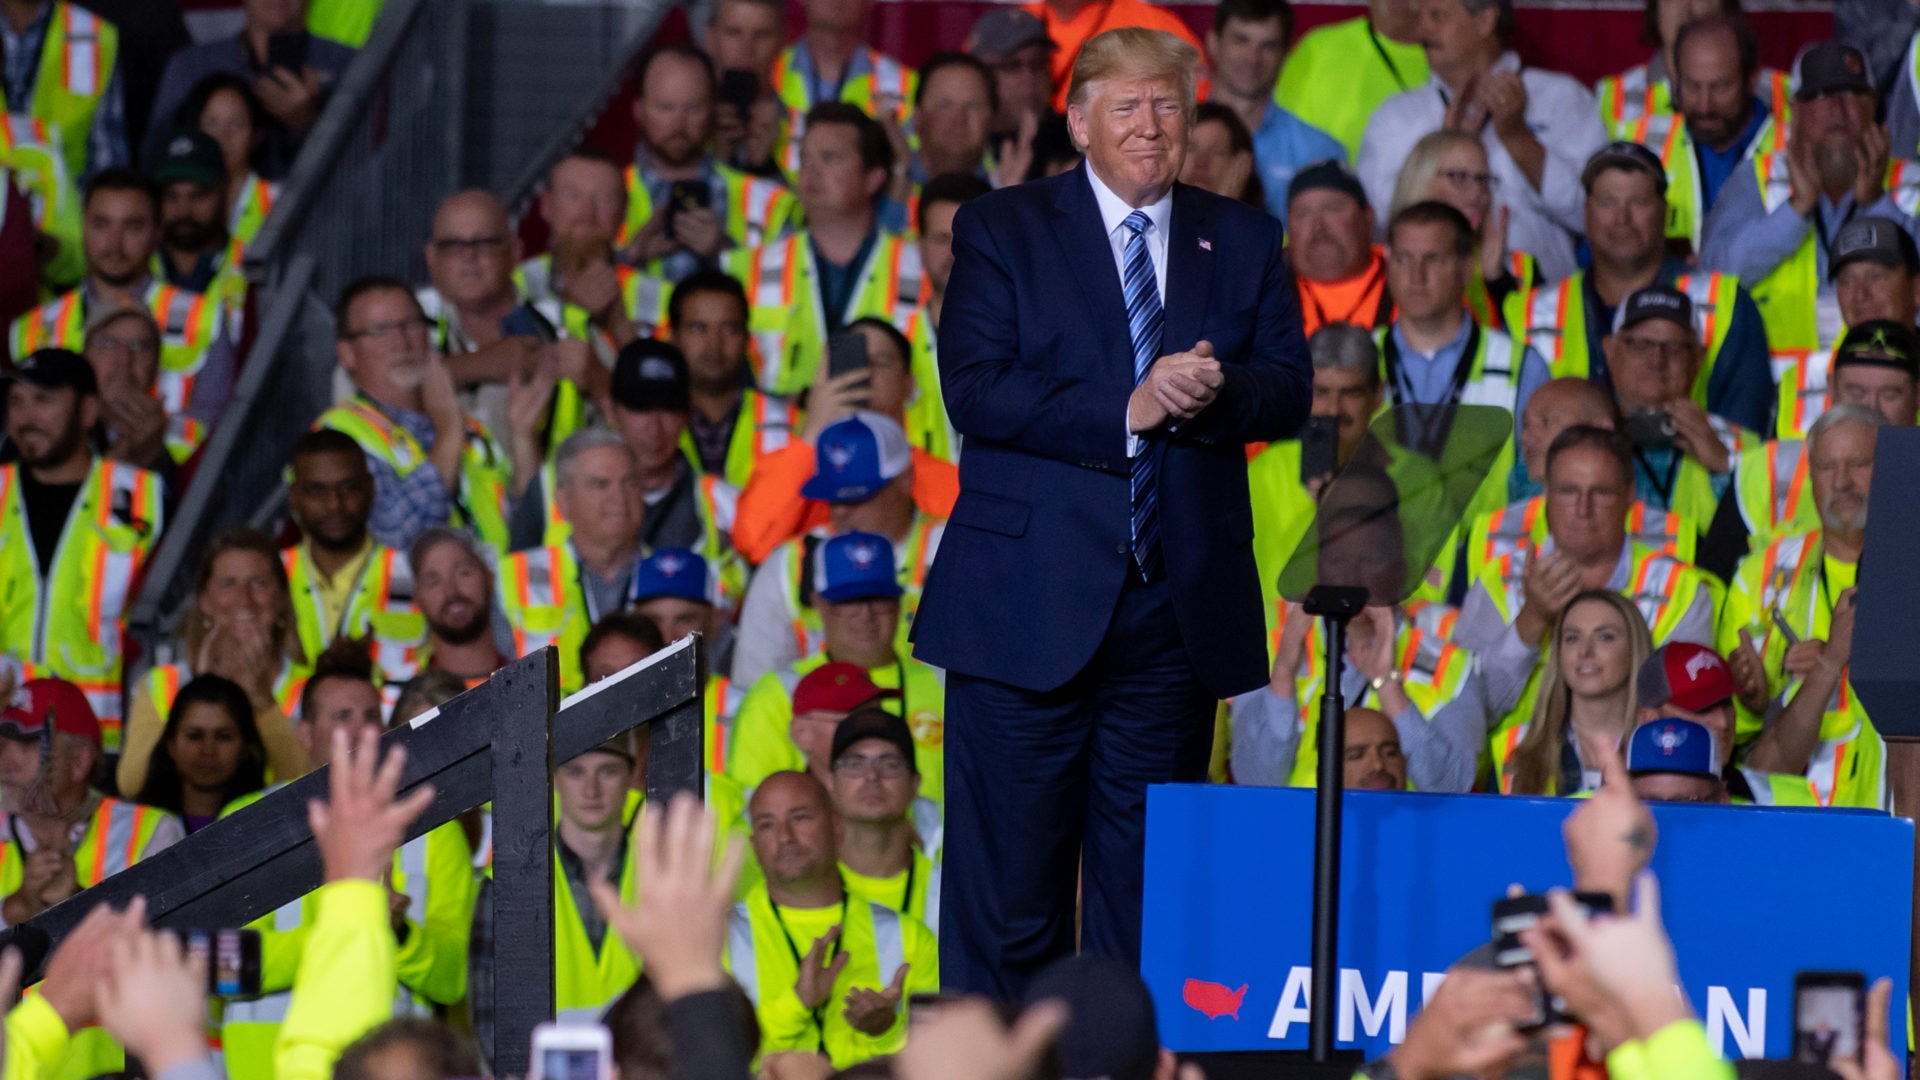 Shell Workers In Pennsylvania Say They Were Told Either Attend A Trump Event Or Not Get Paid